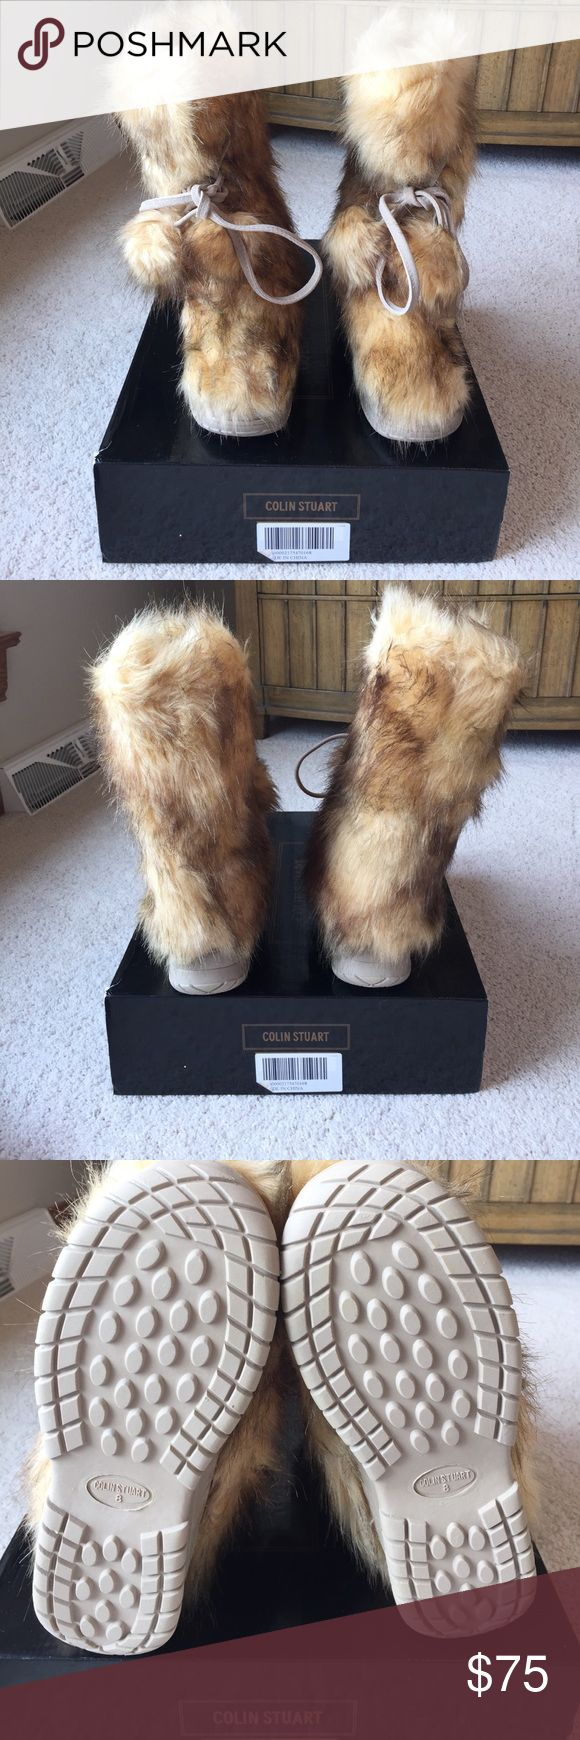 Brand new Colin Stuart fur boots Brand new in the box Colin Stuart fur boots. These were purchased from Victoria's Secret. They have never been worn. They are a size 8. They are a mixture of different color browns. They each have two attached Pom pons on the front of the boots. Colin Stuart Shoes Winter & Rain Boots